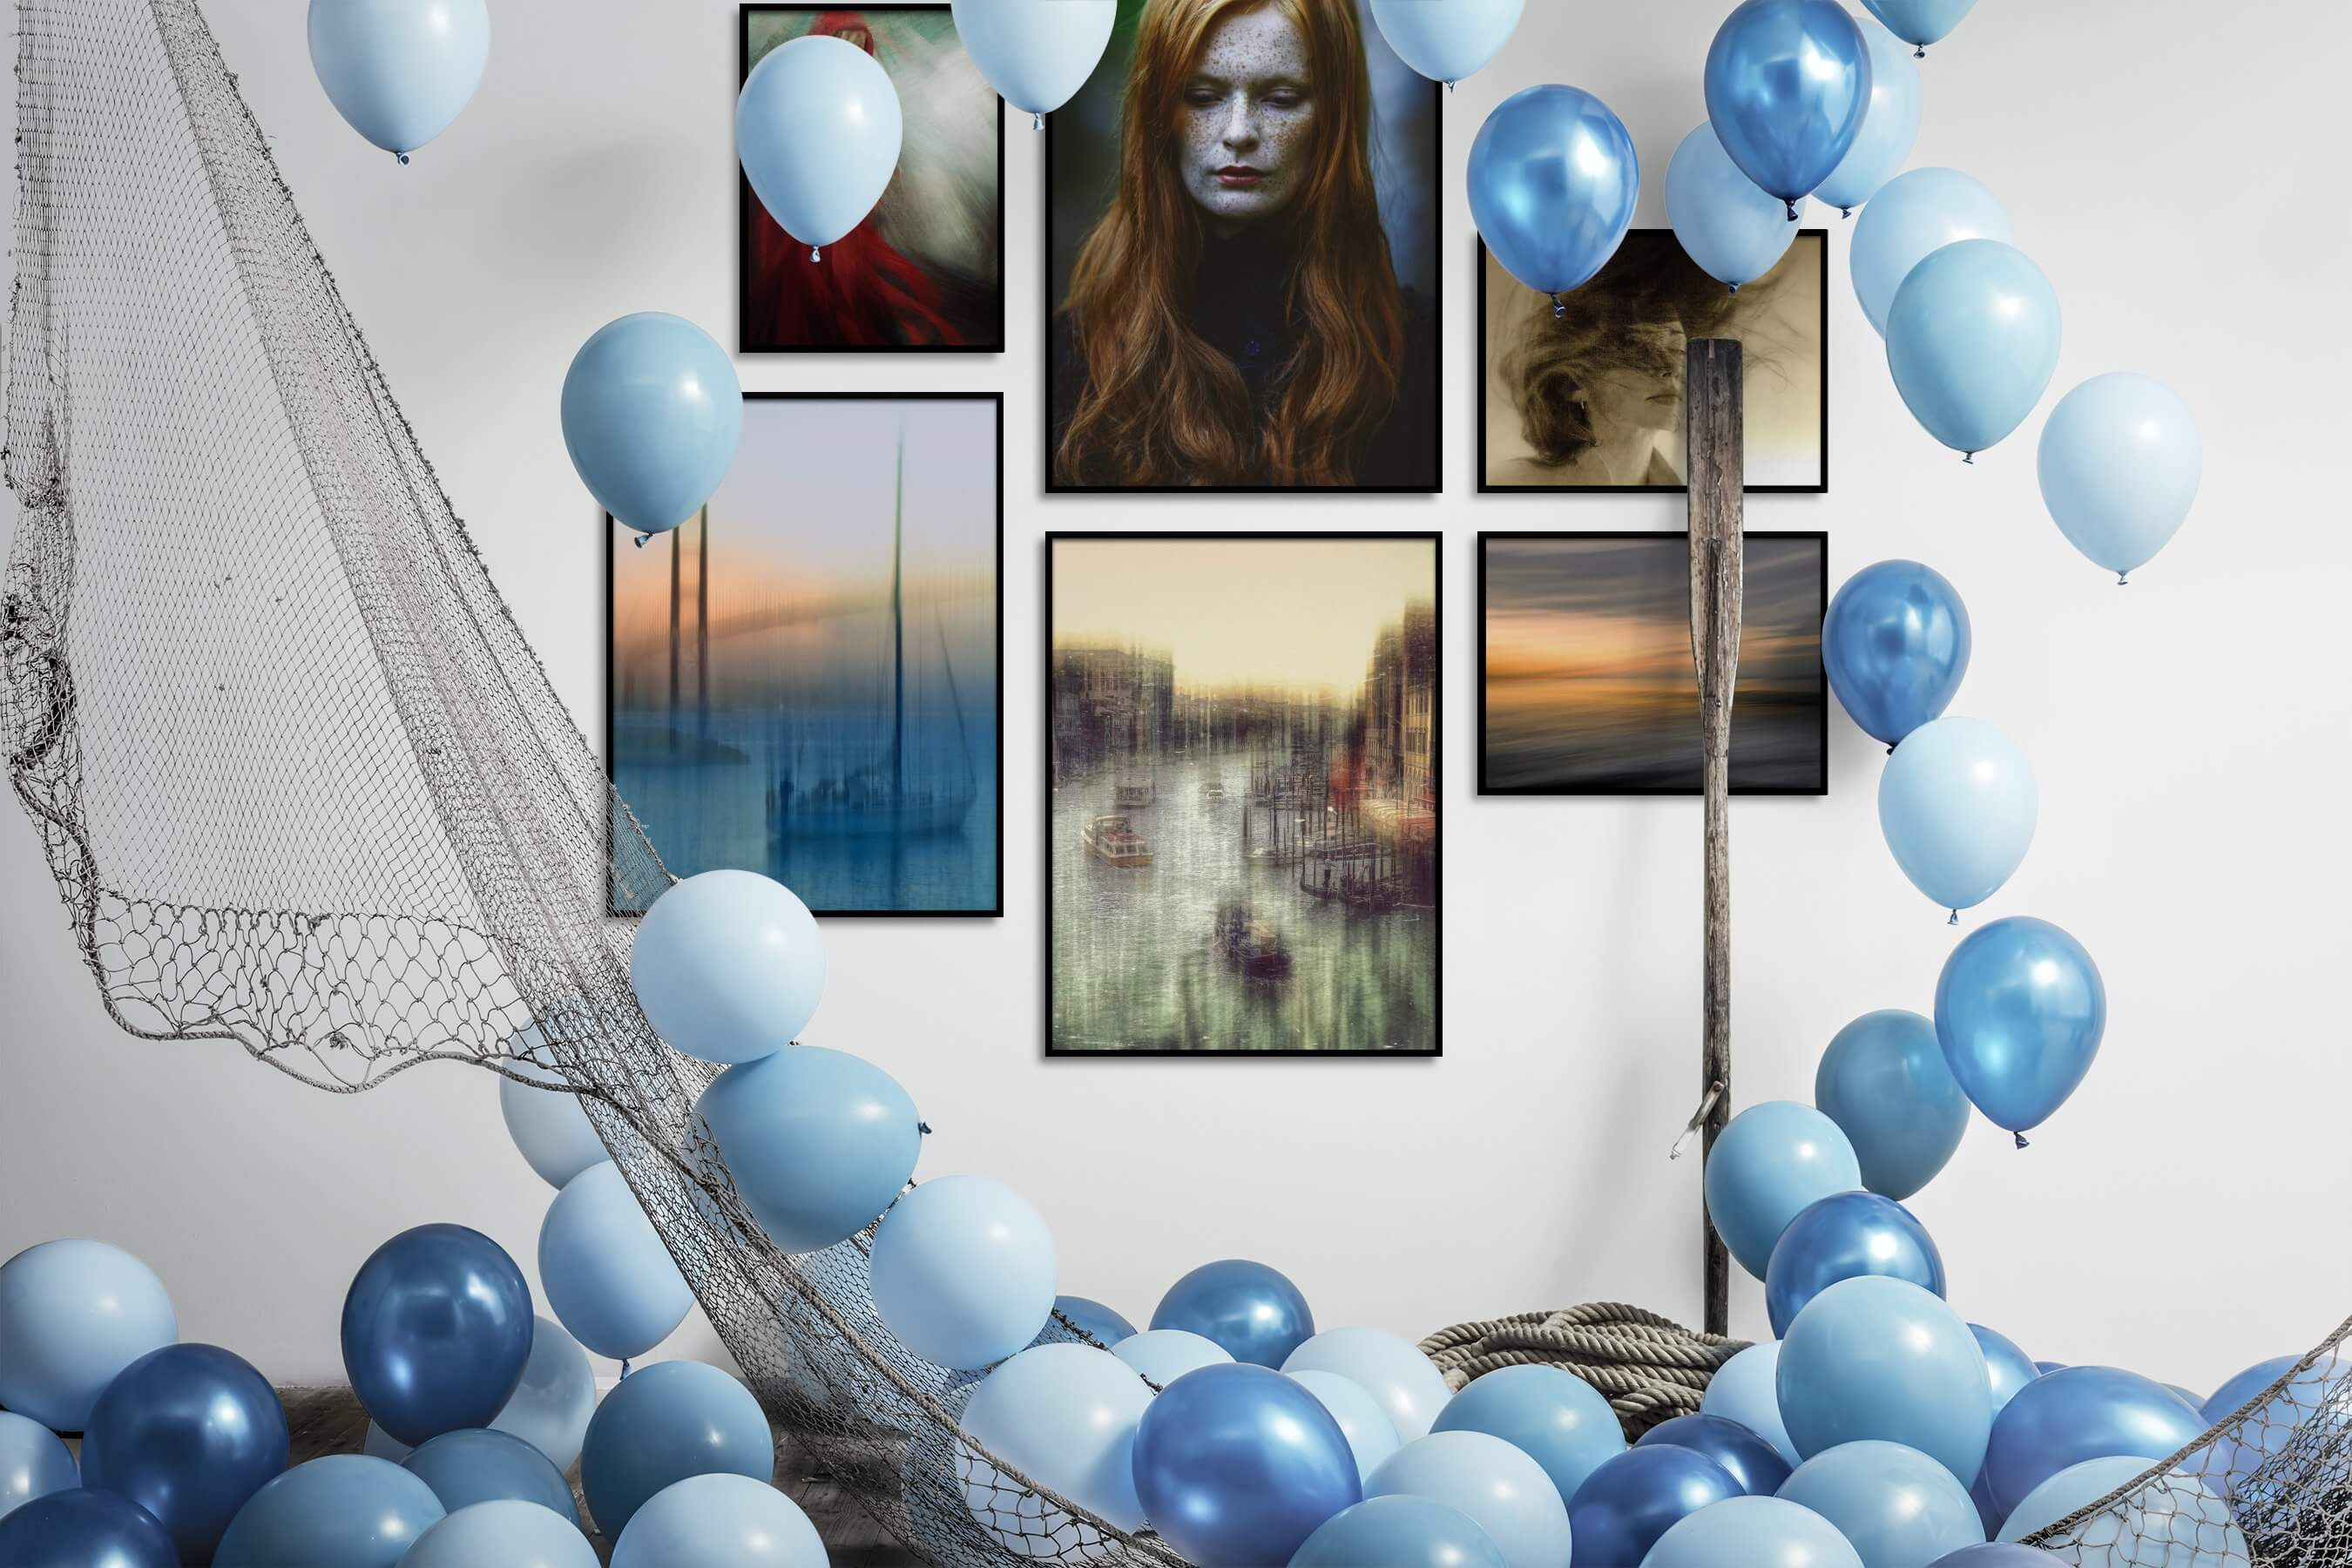 Gallery wall idea with six framed pictures arranged on a wall depicting Fashion & Beauty, Beach & Water, For the Moderate, and City Life